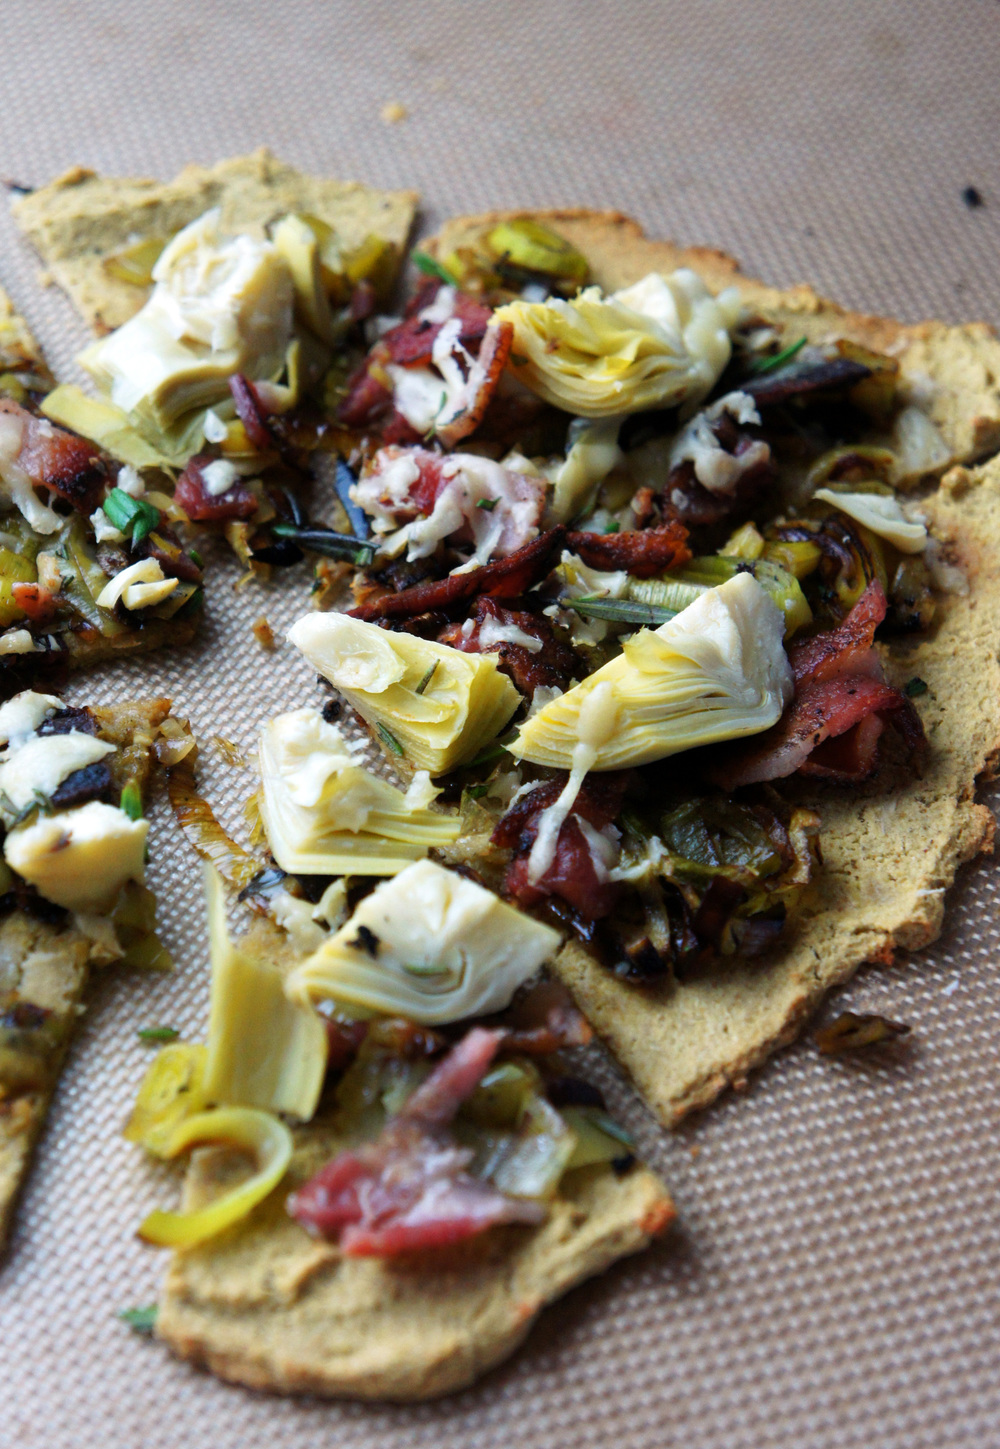 Paleo pizza crust, Nut free! Caramelized Leeks, Bacon, Artichokes.